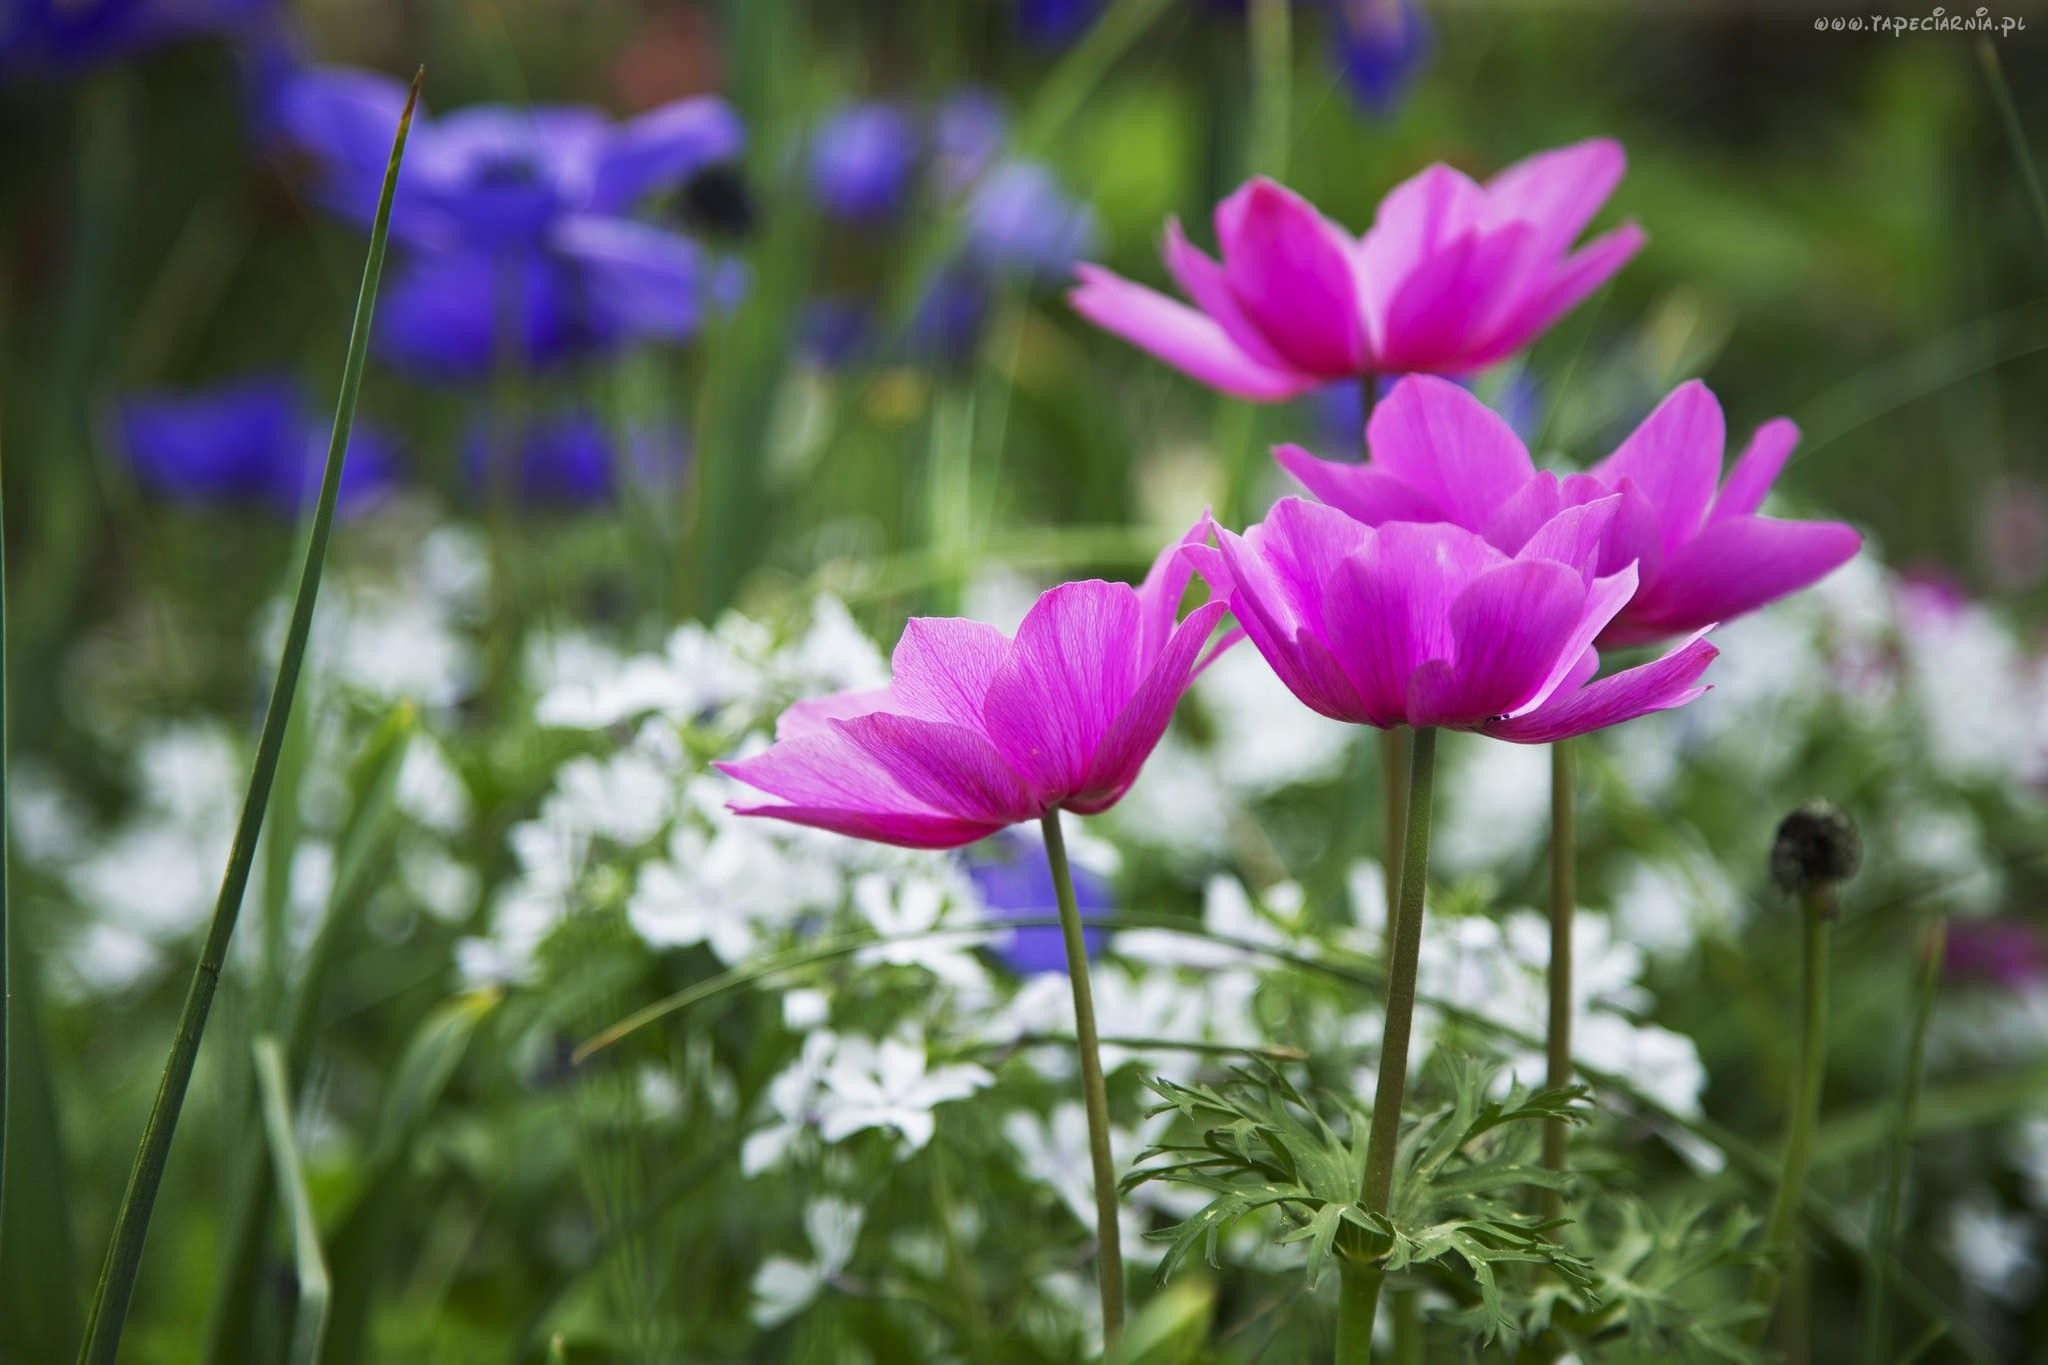 Edycja Tapety Kwiaty Anemony Tapety Tapeta Zdjecia Tapety Na Pulpit Nature Photography Flowers Best Flower Pictures Pink Nature